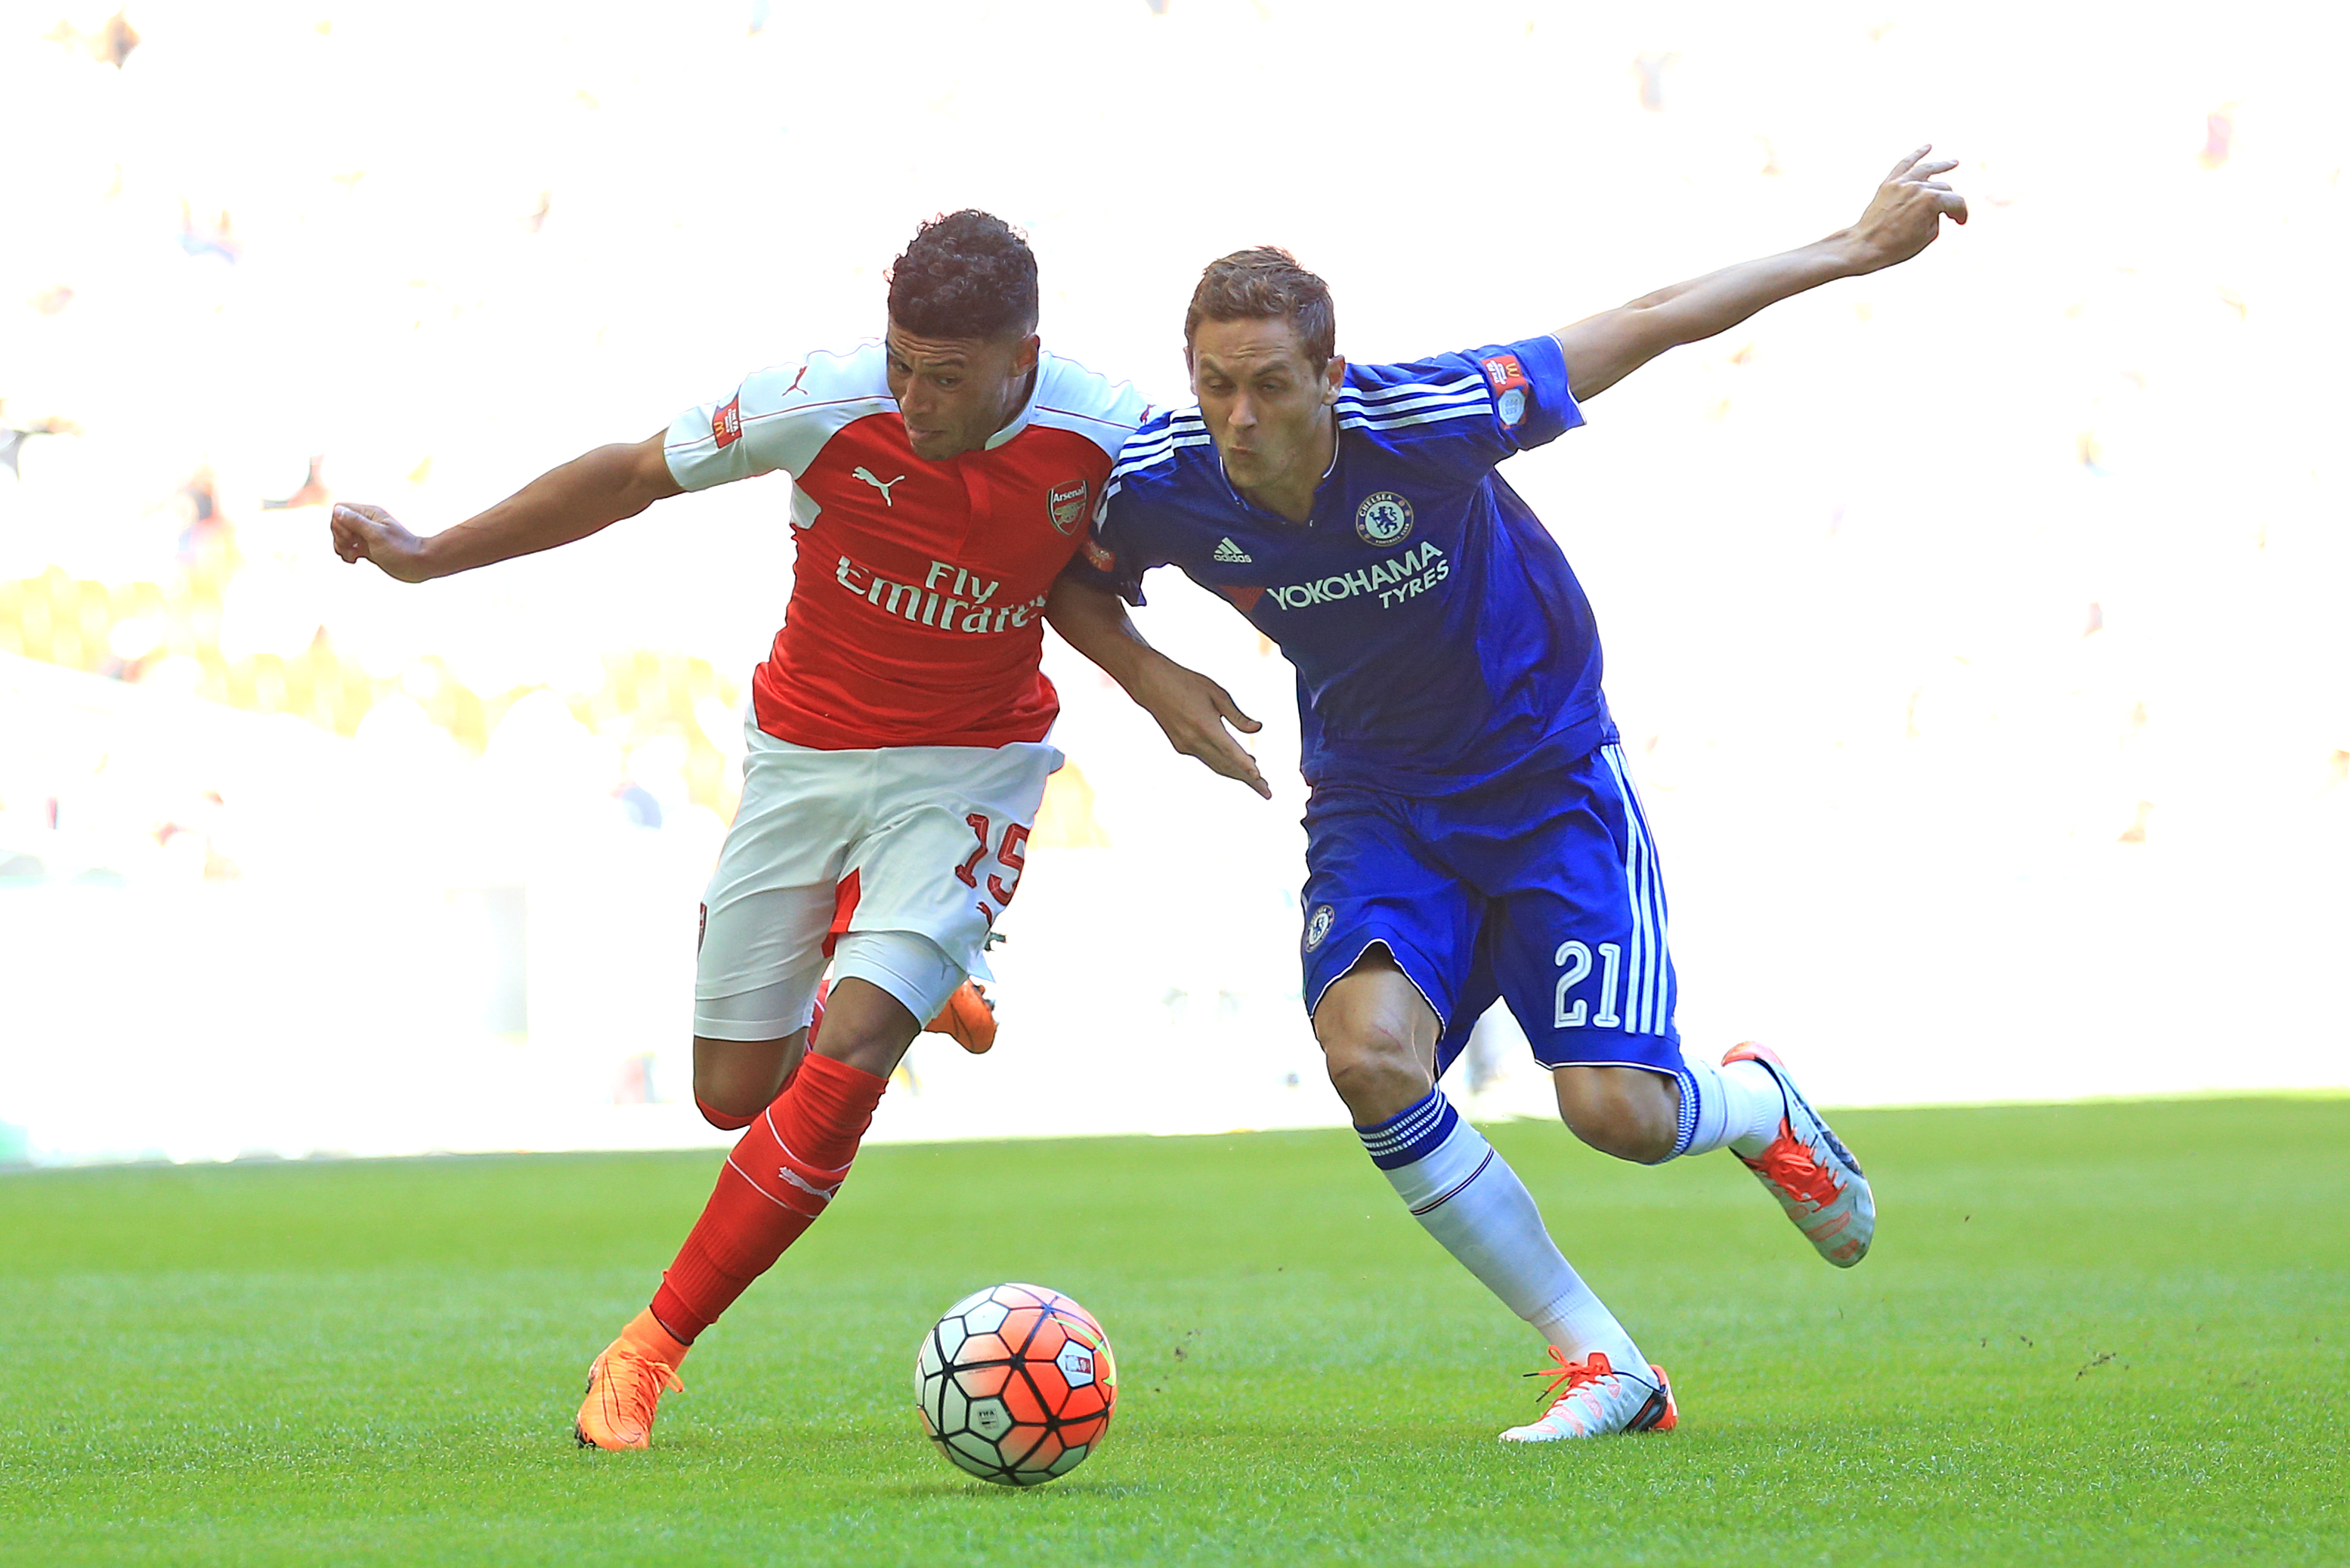 Arsenal's Alex Oxlade-Chamberlain (left) and Chelsea's Nemanja Matic battle for the ball during the FA Community Shield at Wembley Stadium, London.